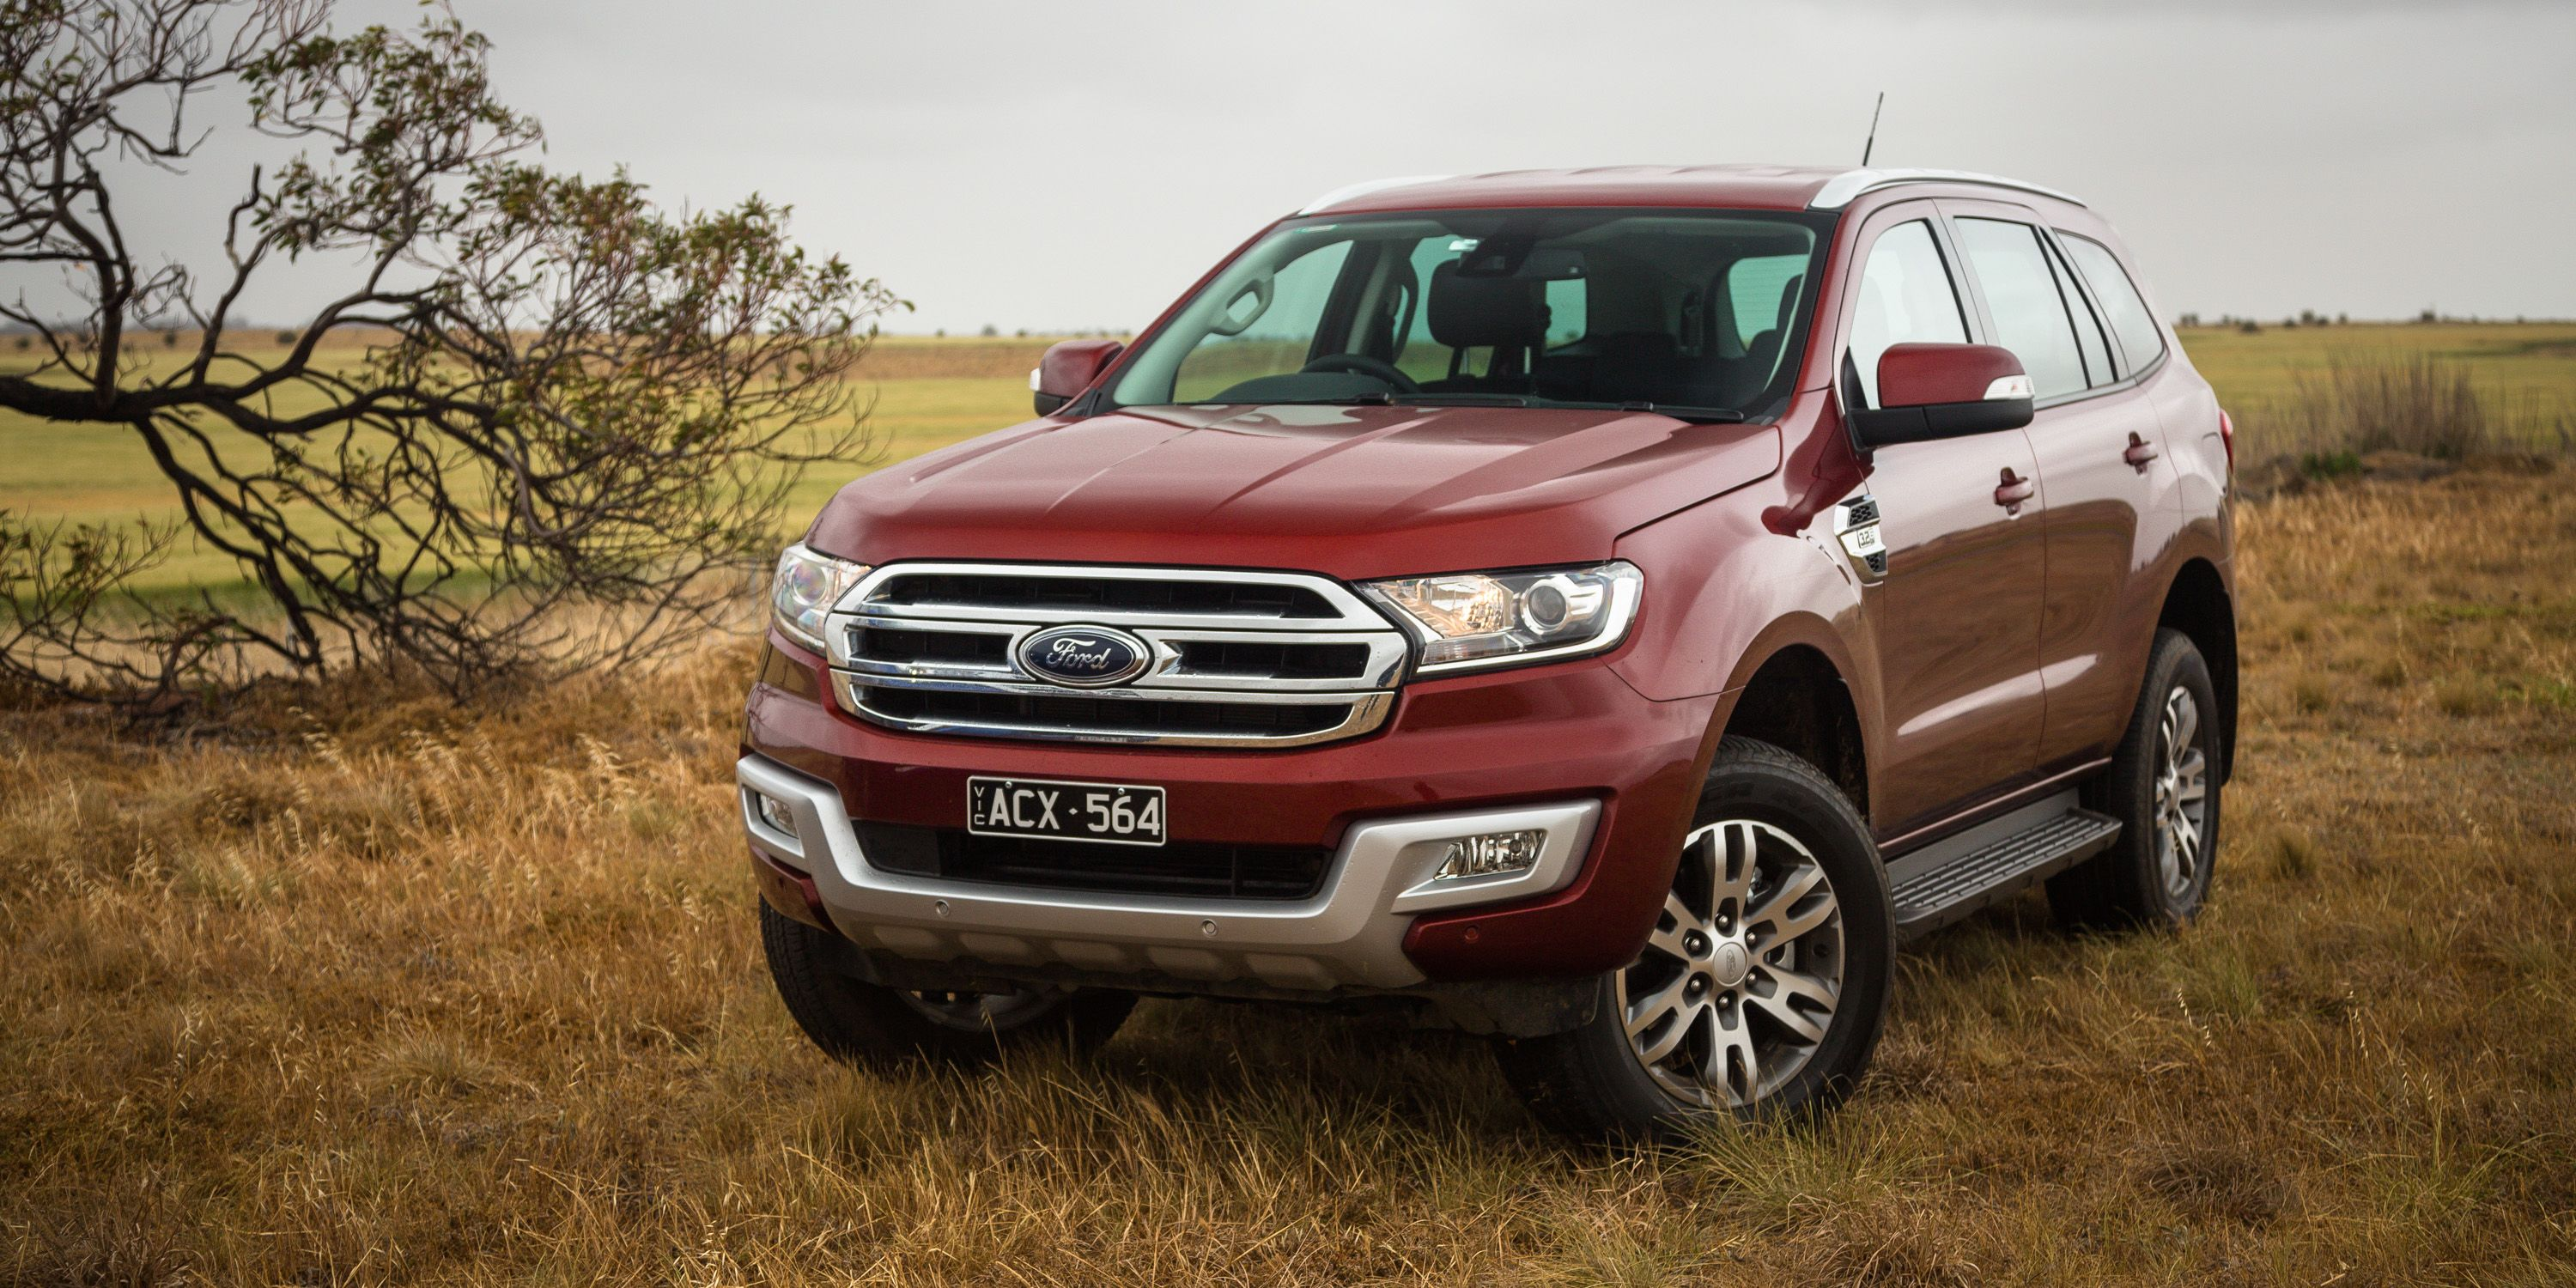 2016 Ford Everest Wallpaper Download With Images Ford Bronco